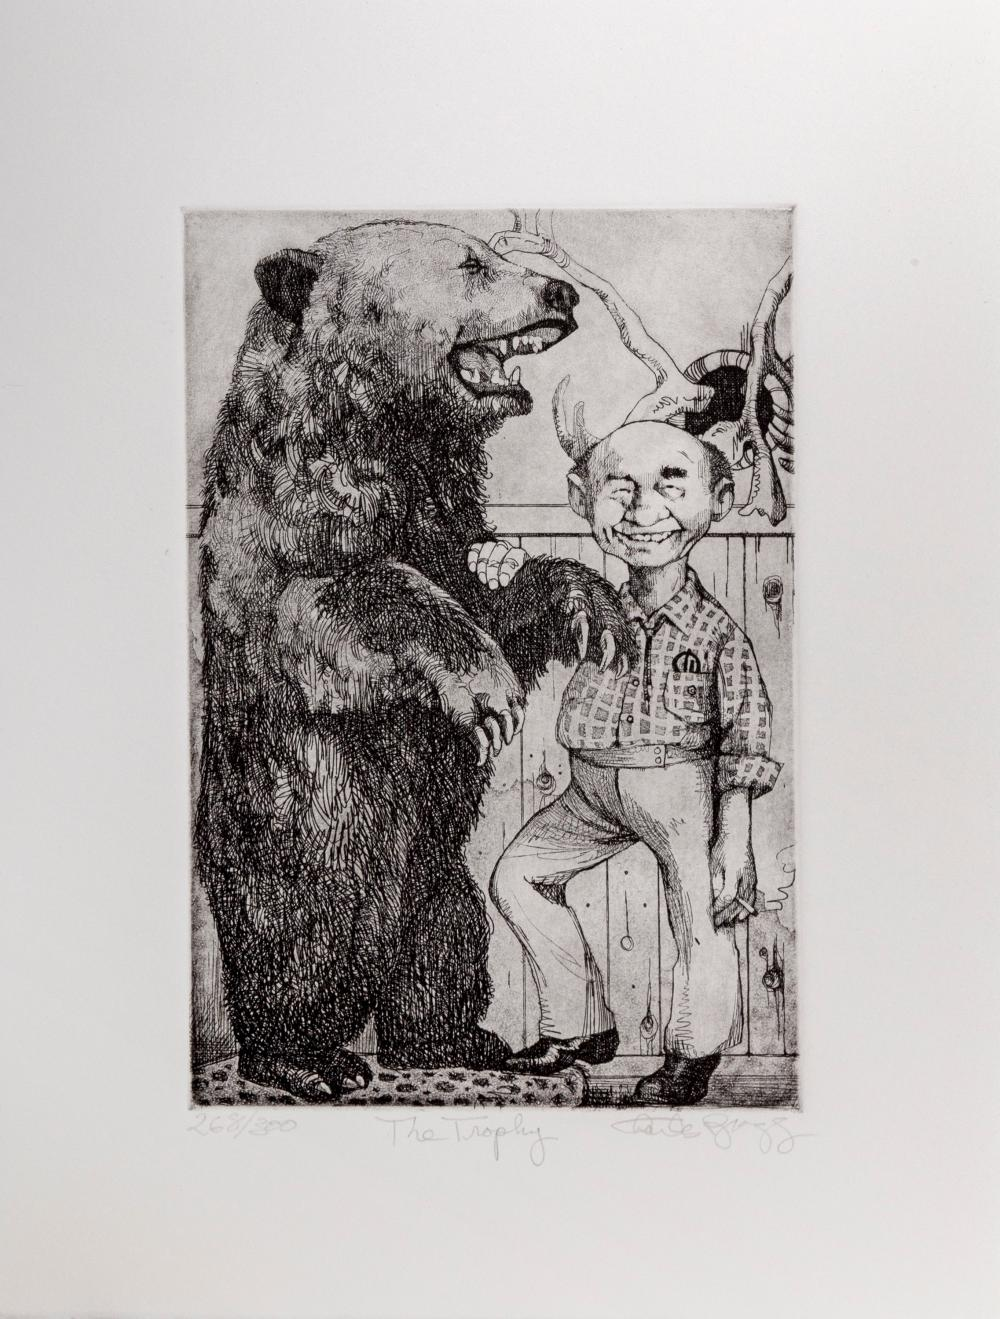 Charles Bragg, The Trophy, Etching